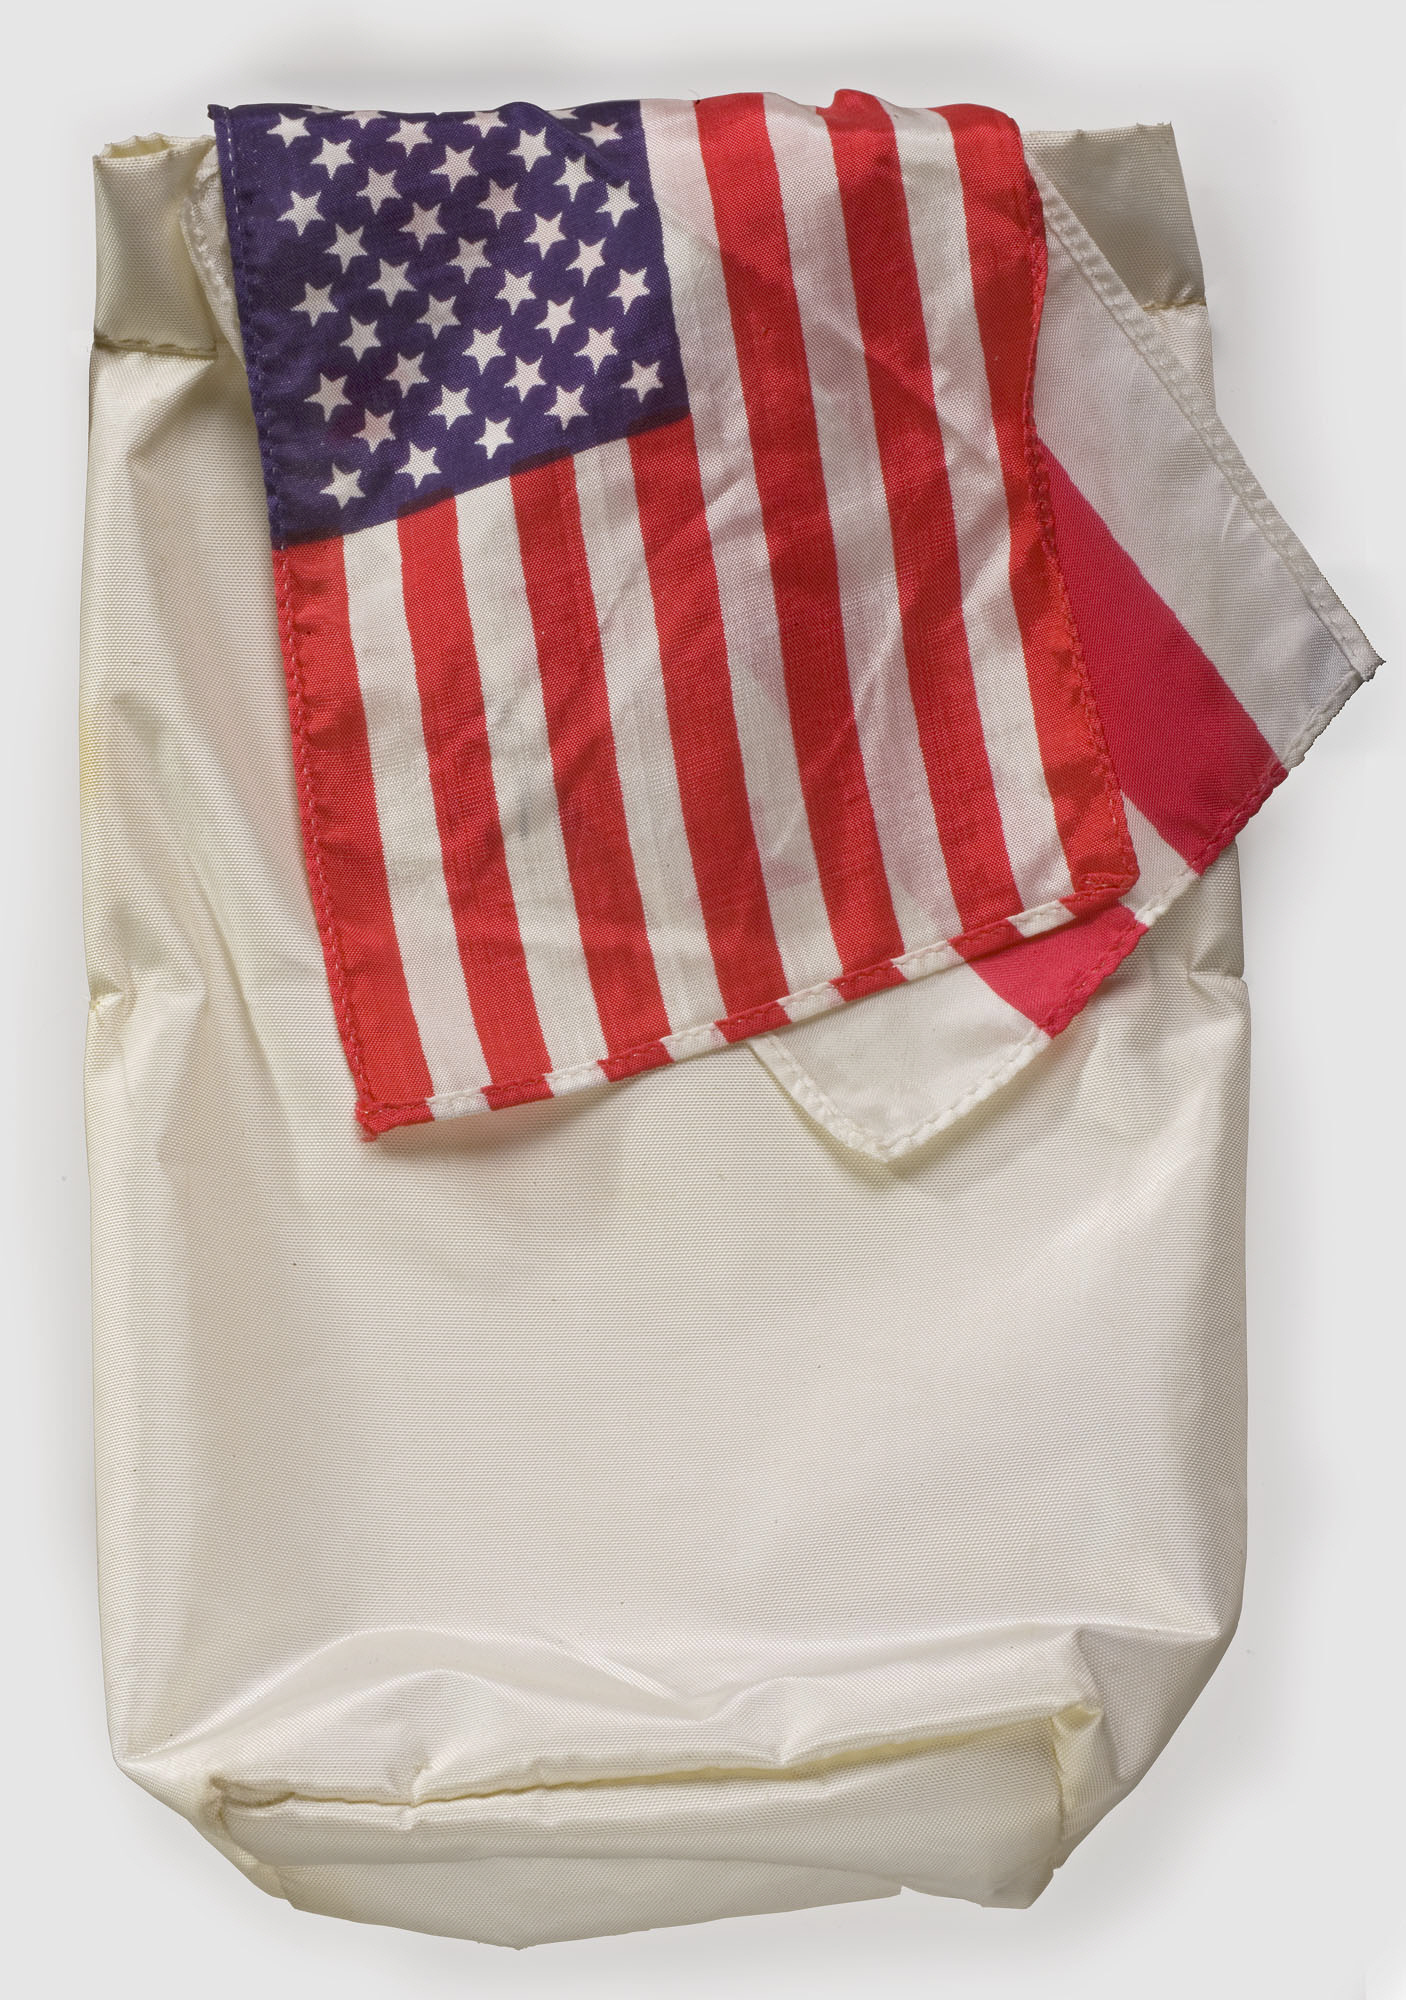 Image of : Kit, Personal Preference, Apollo 11